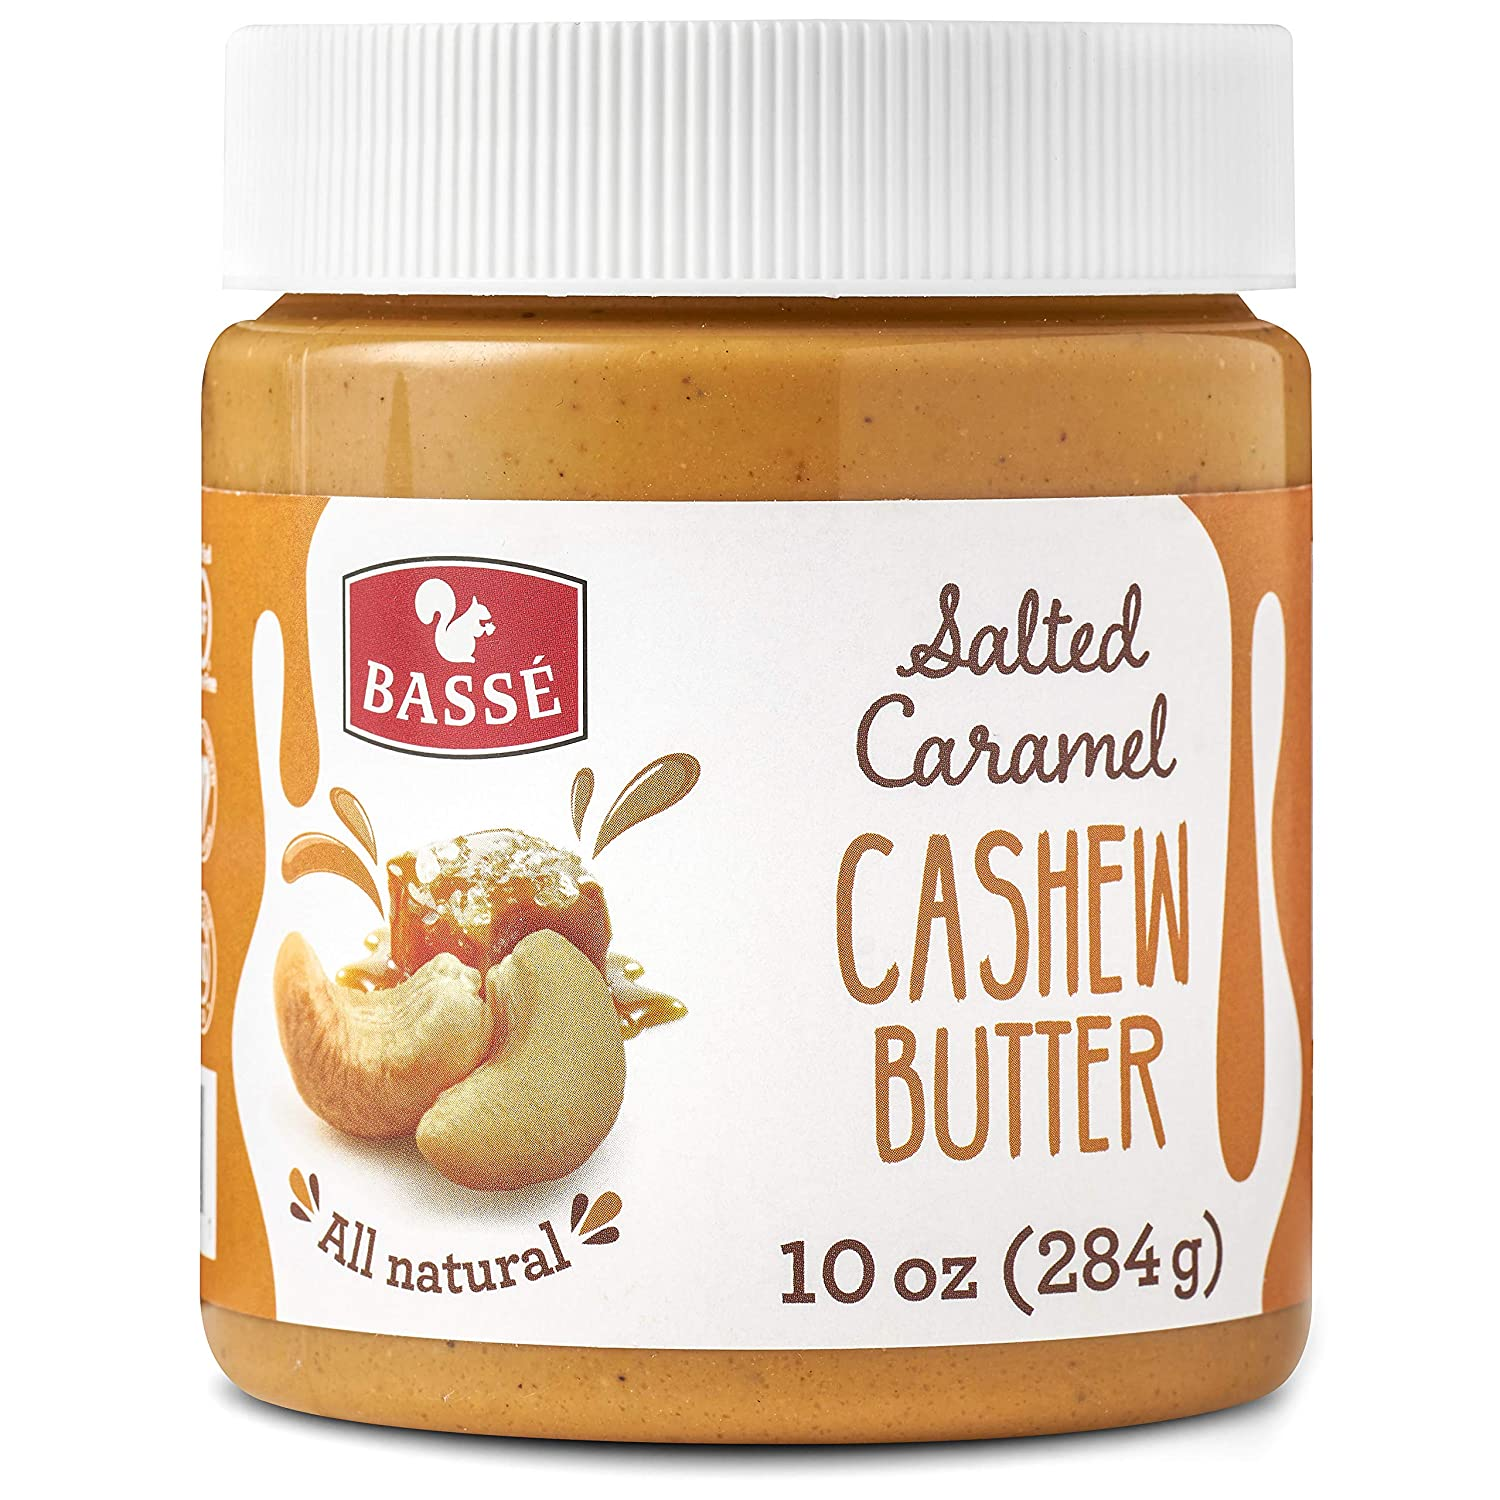 Basse All Natural Cashew Butter with Salted Caramel, Certified Gluten Free and Vegan Nut Butter,...